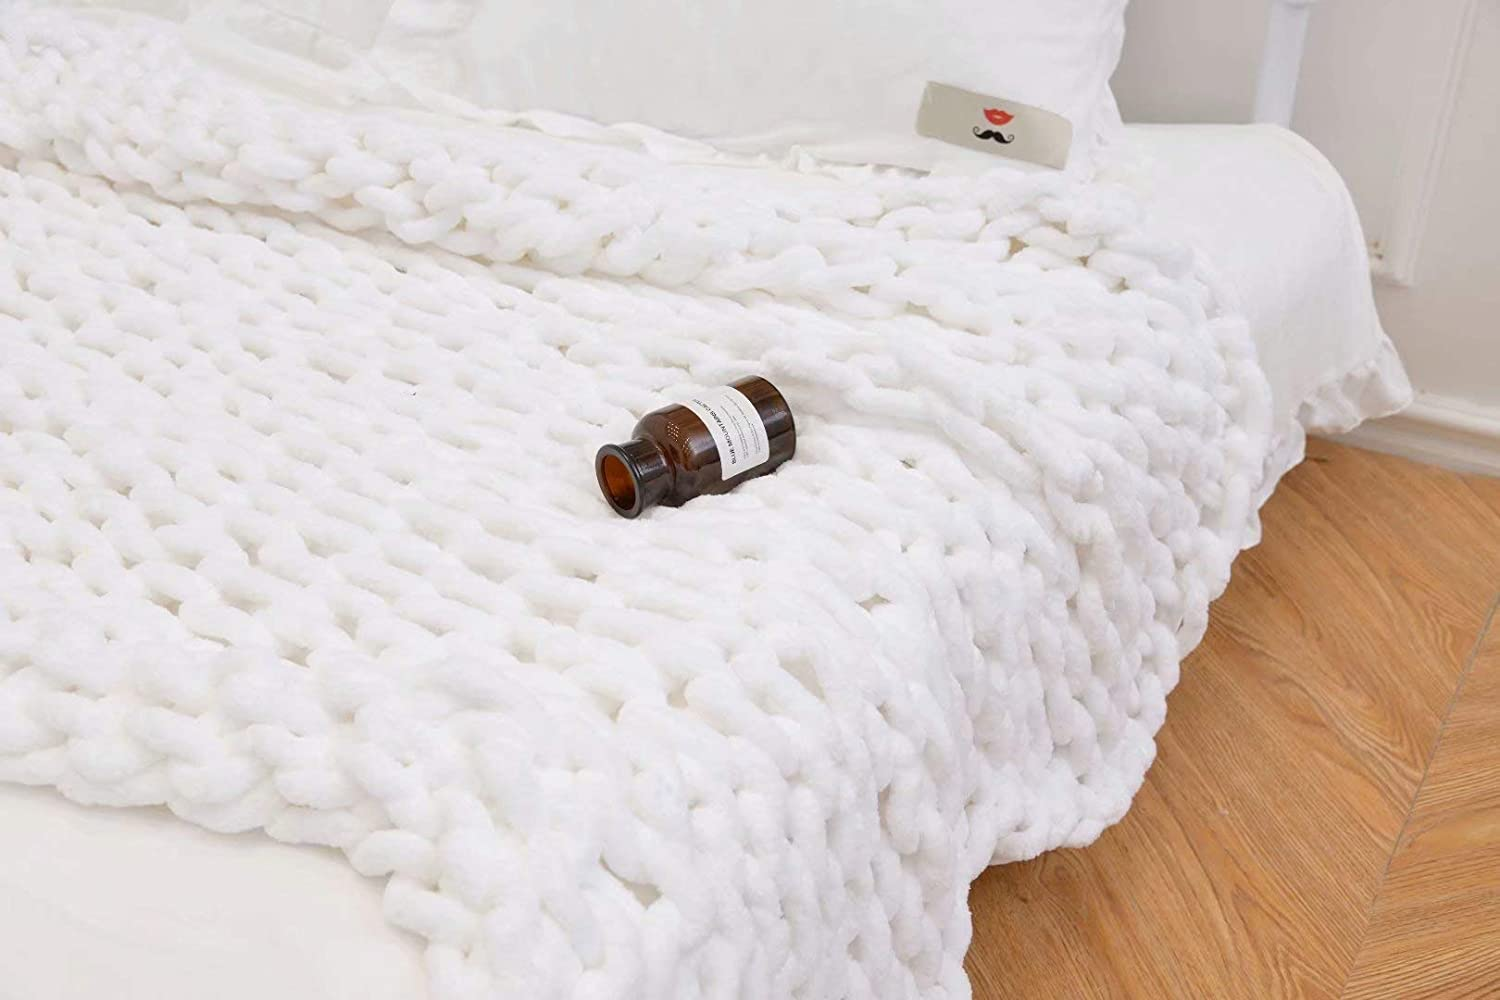 Chunky Knit Blanket Soft Bulky Hand Made Chenille Throw for Bedroom Sofa Decor Super,Queen Size,White,71